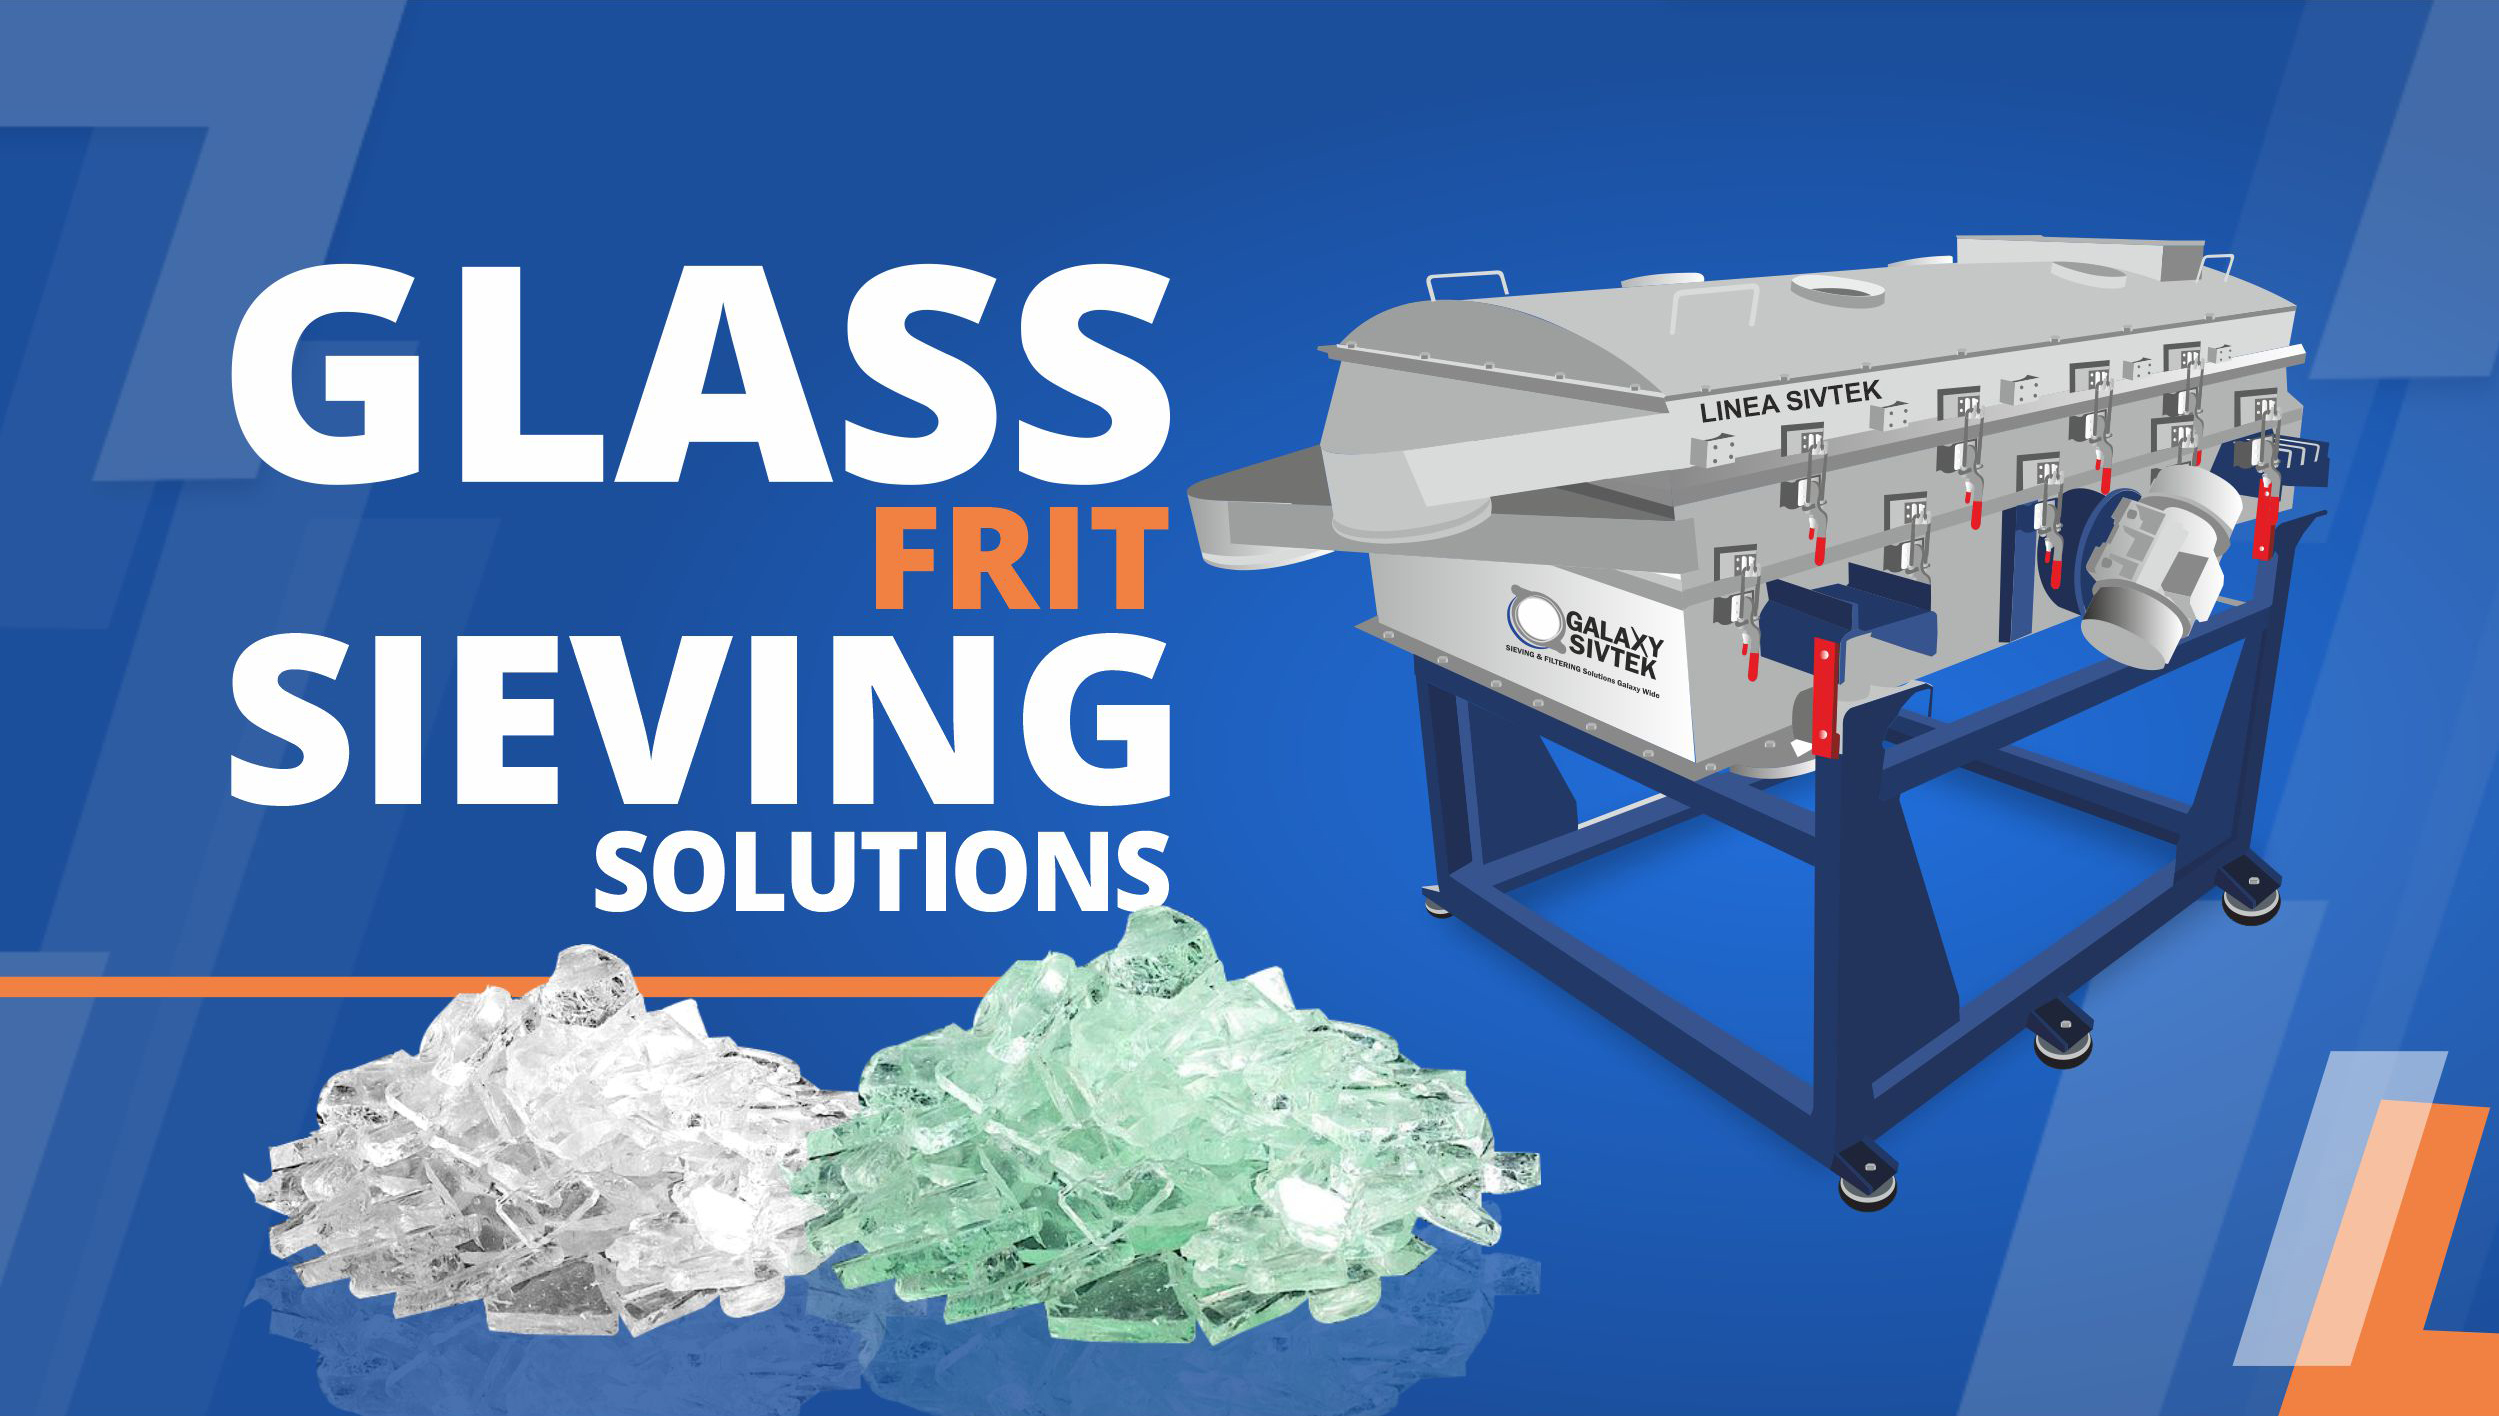 Screening and sieving solutions for glass frit